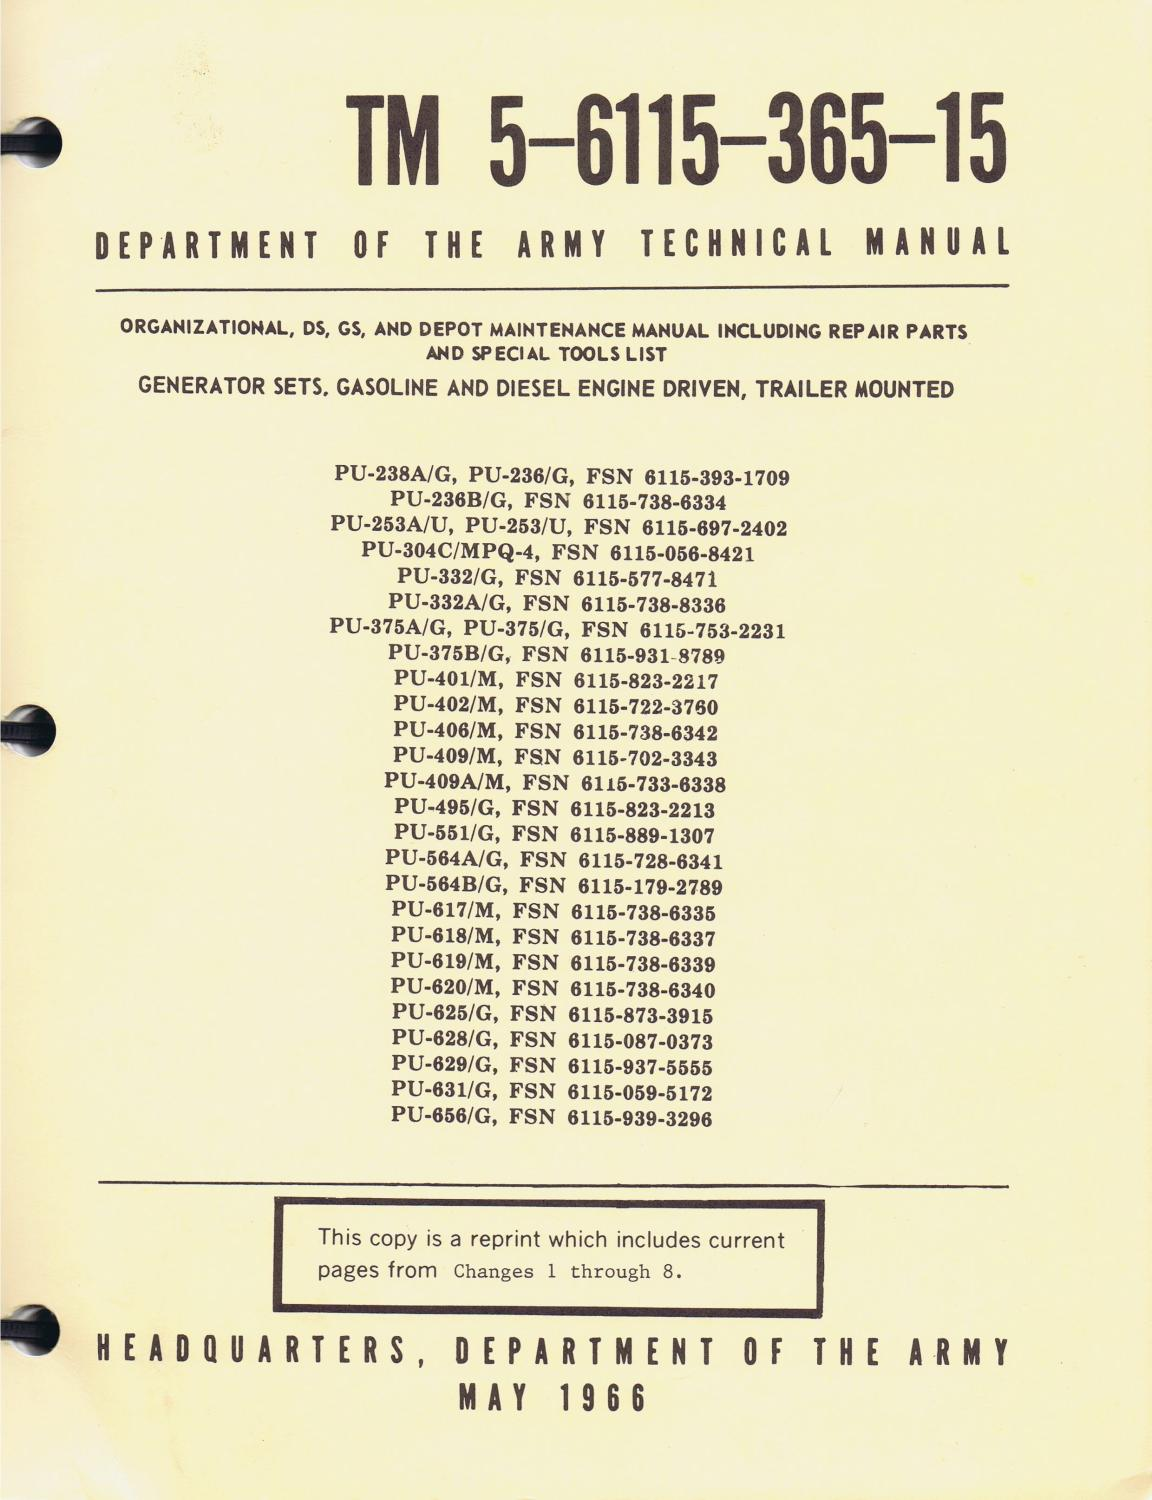 u s army technical manual tm 5 6115 365 15 generator sets rh abebooks com U.S. Army Special Forces Manual U.S. Army TM Manuals